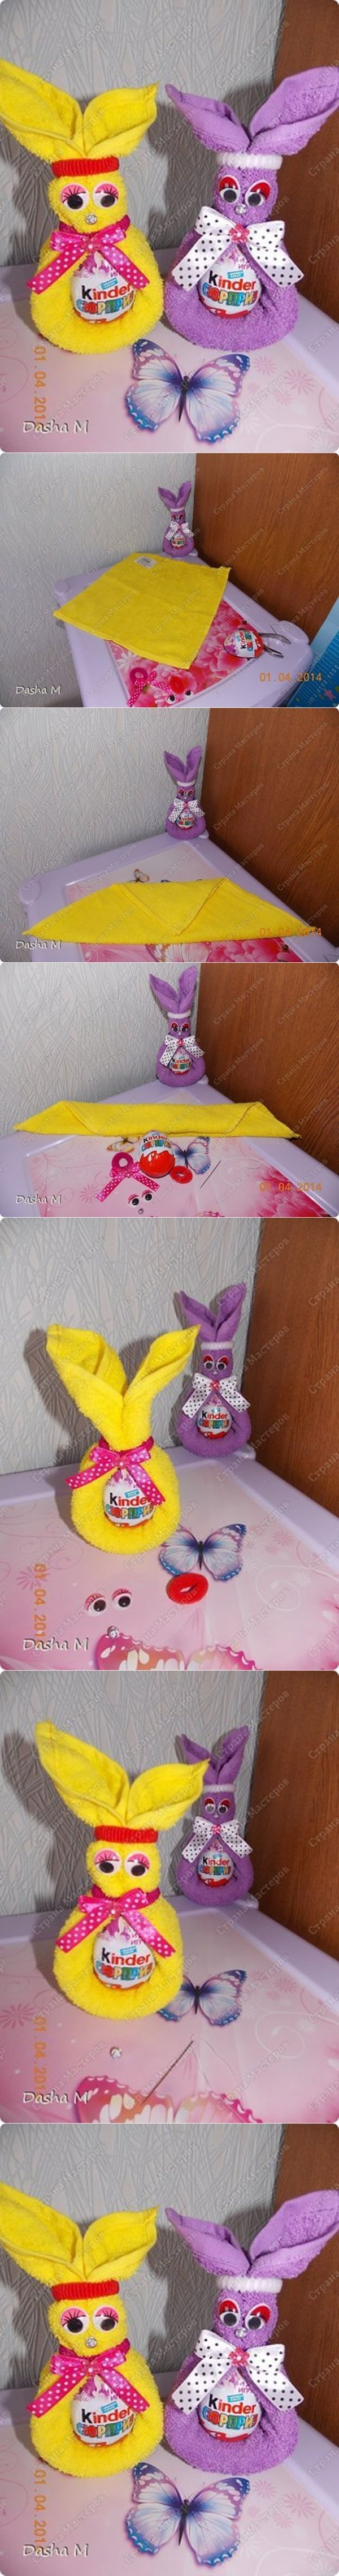 DIY Towel Bunny with Easter Egg in Last Minute | www.FabArtDIY.com LIKE Us on Facebook ==> https://www.facebook.com/FabArtDIY